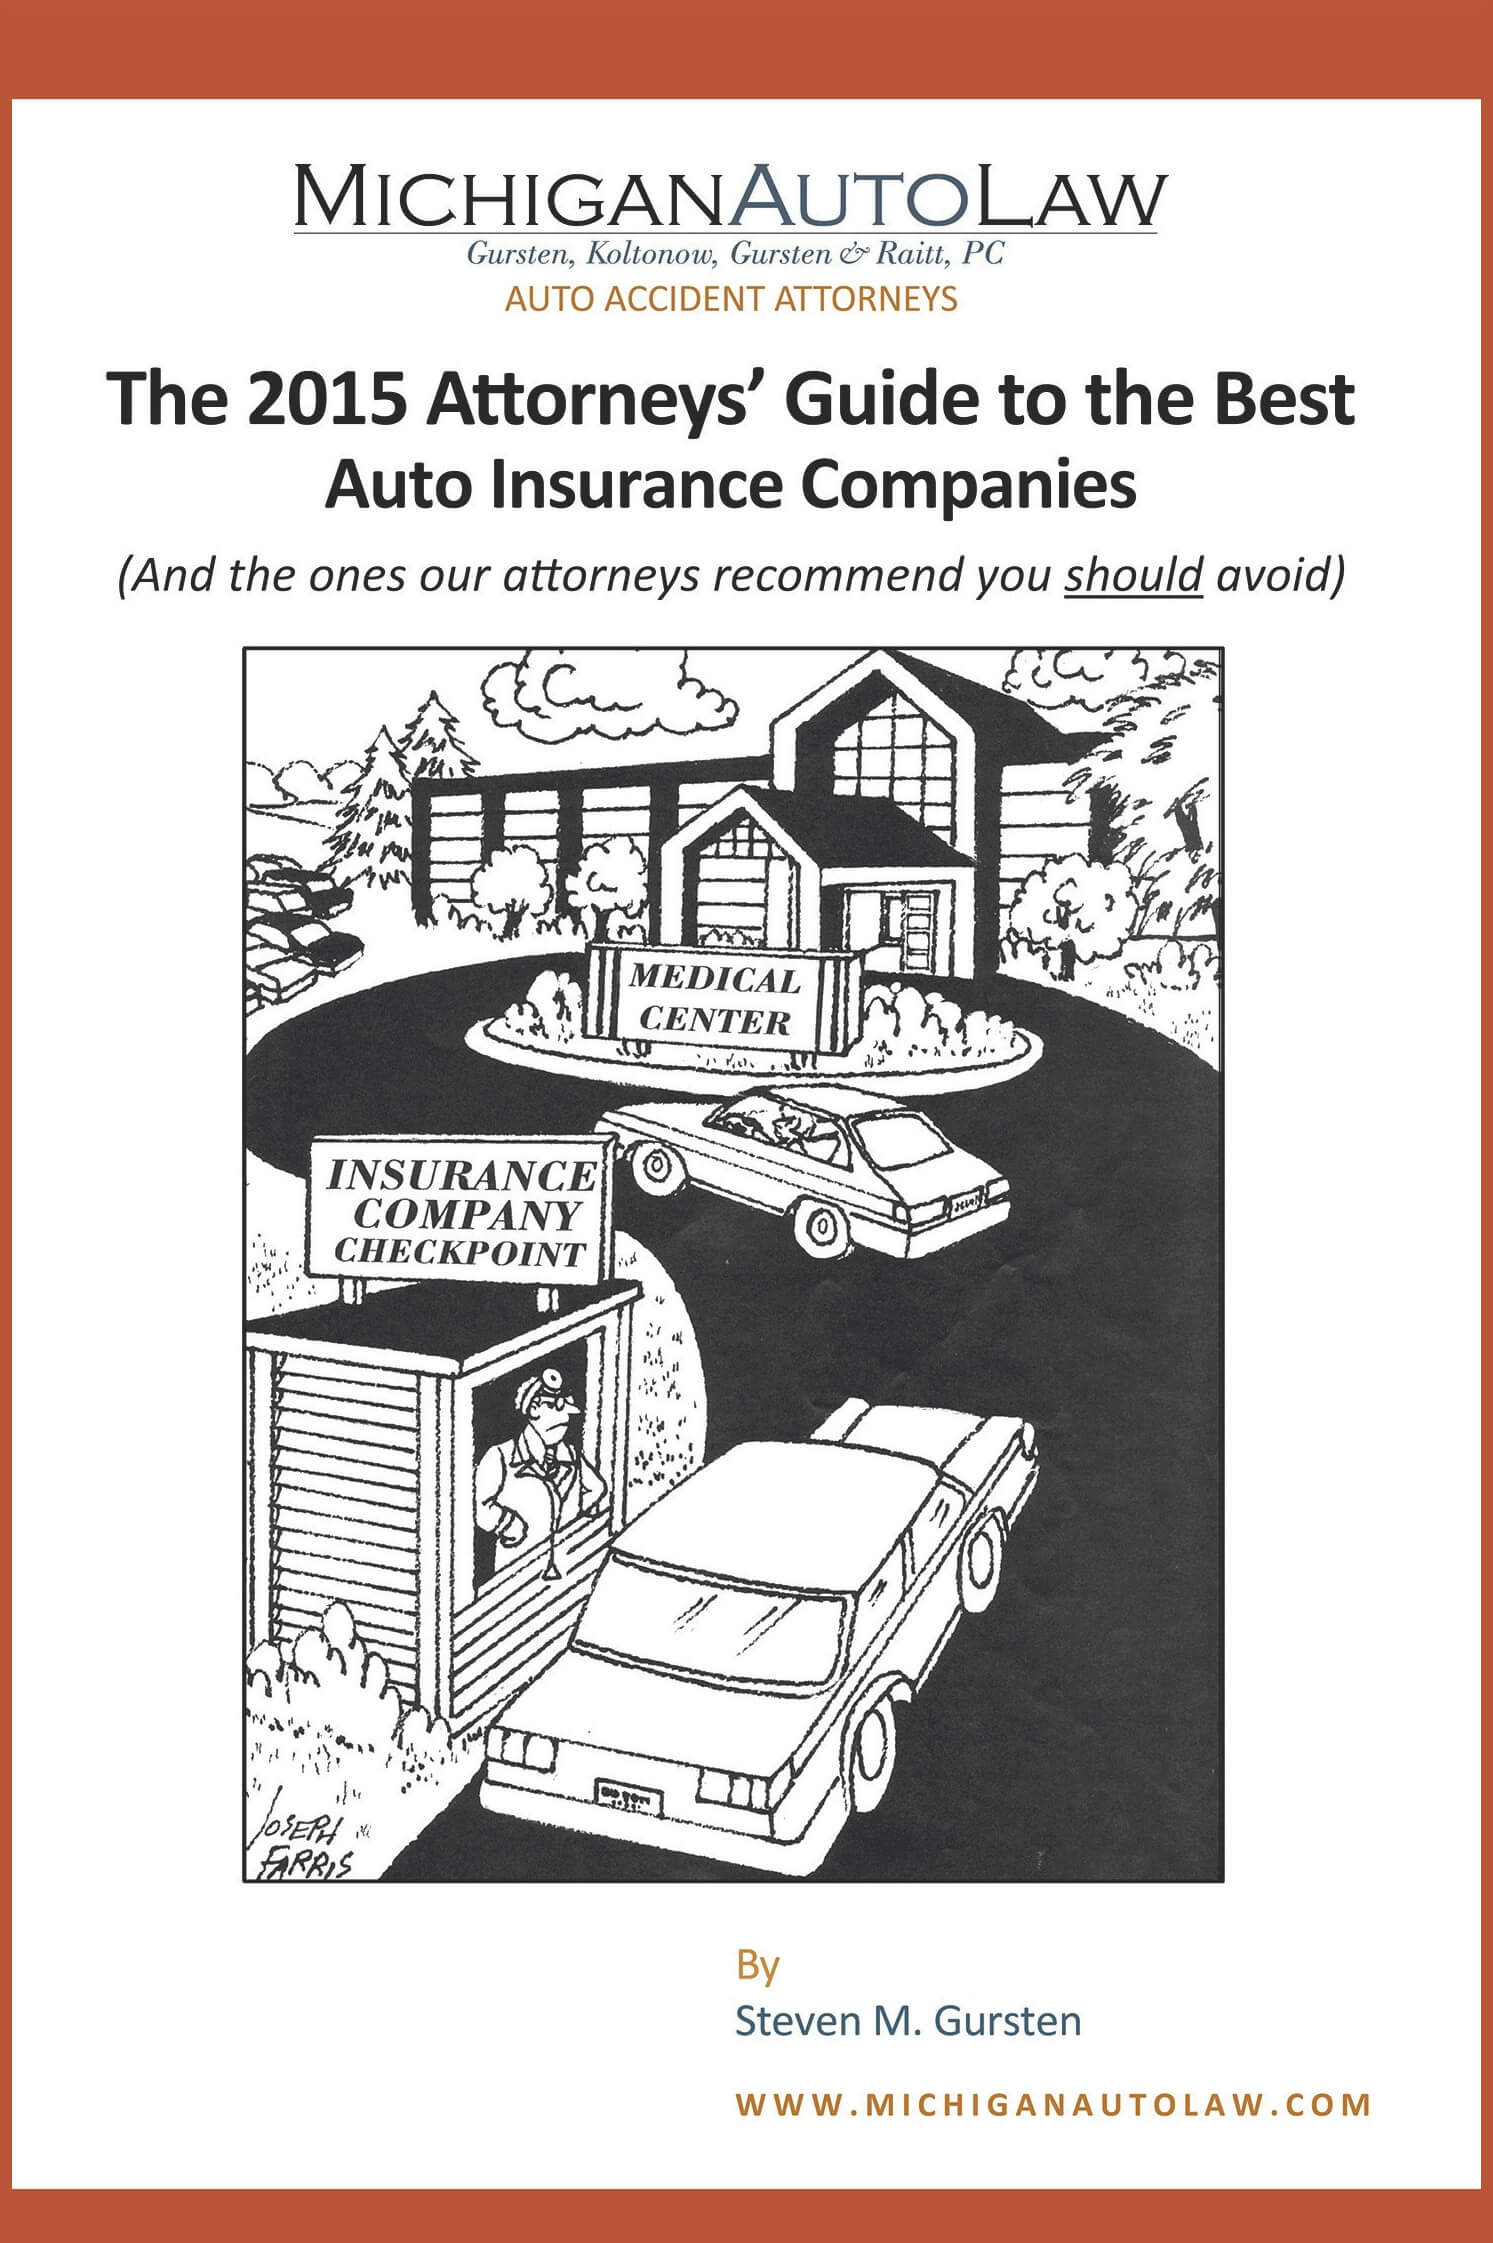 The Attorneys' Guide to the Best Auto Insurance Companies